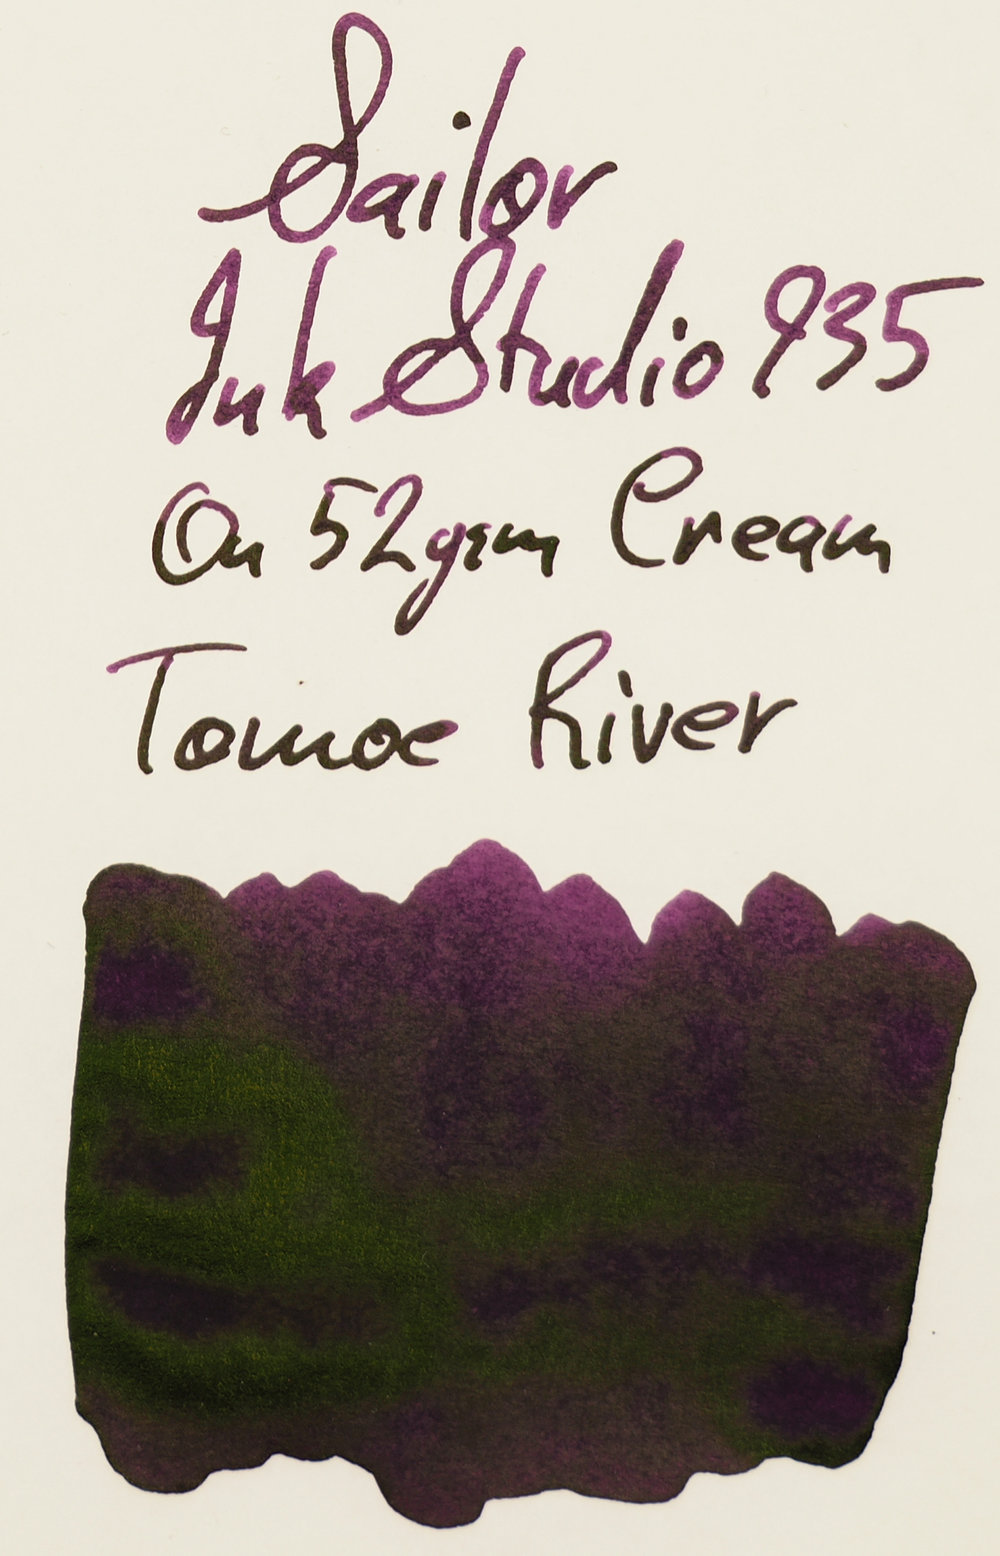 Paper 52gsm Cream Tomoe RIver.jpg